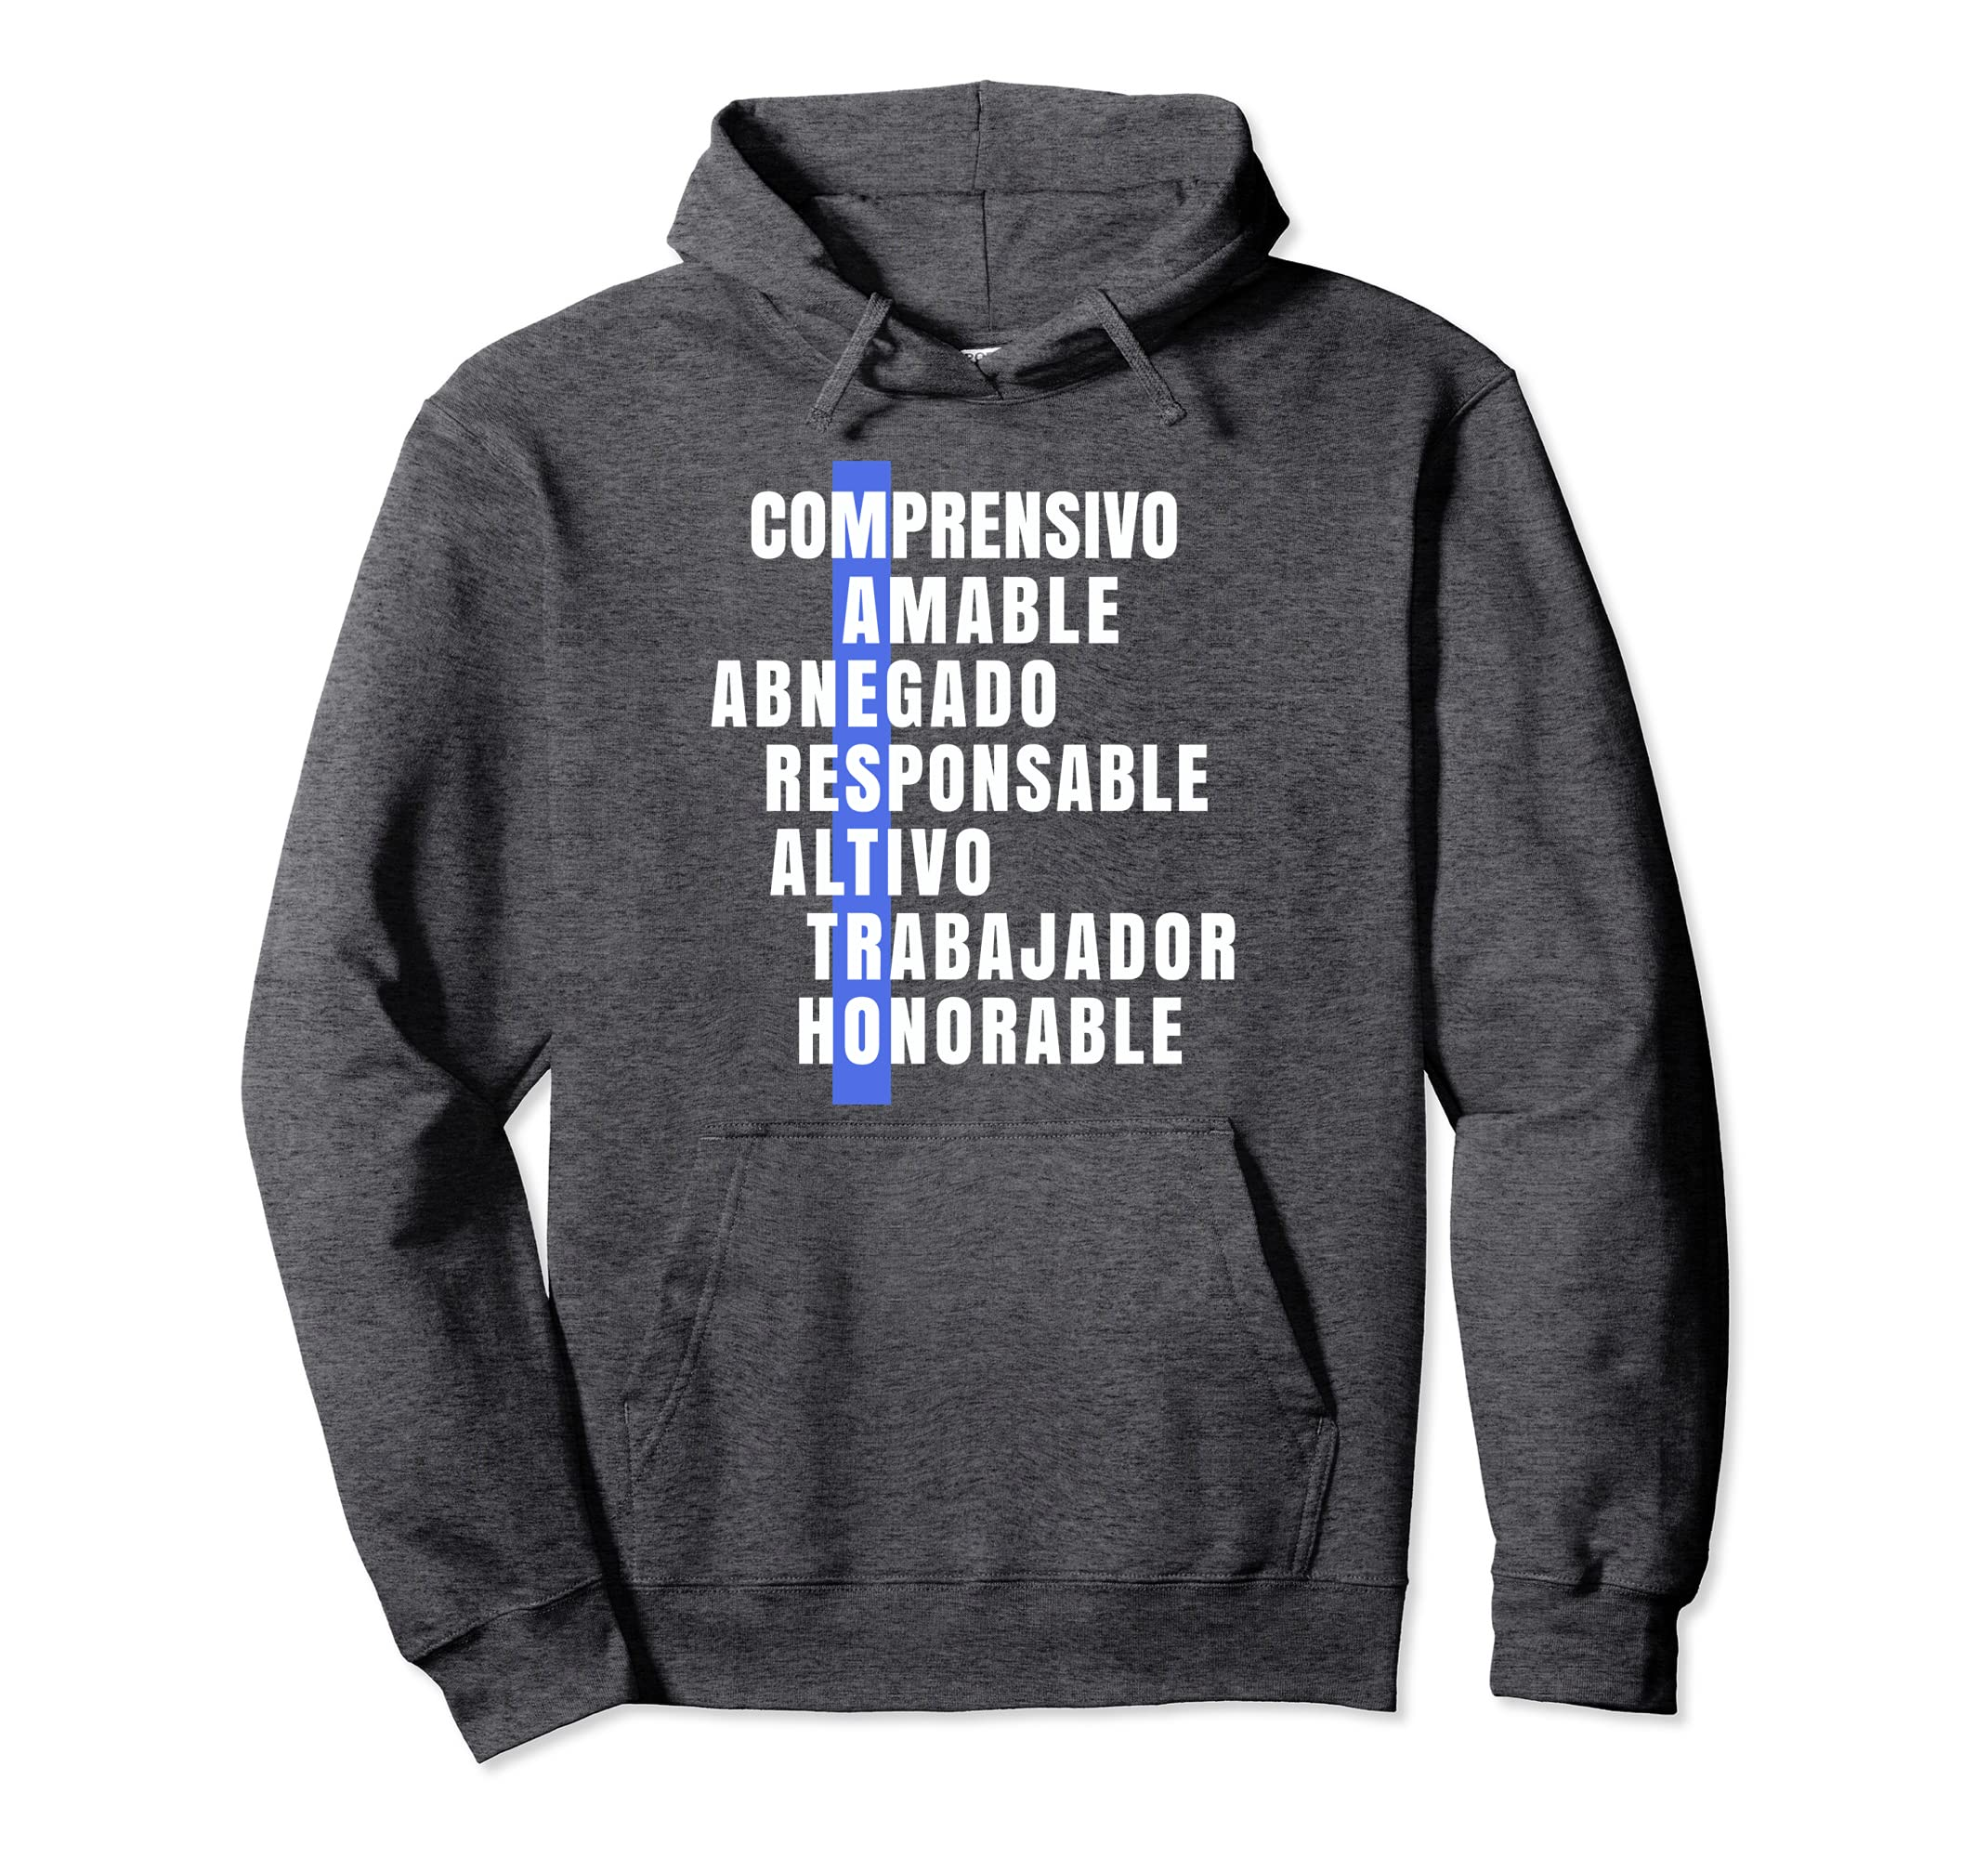 Amazon.com: Maestro vintage Hoodies Navidad Cumpleanos: Clothing